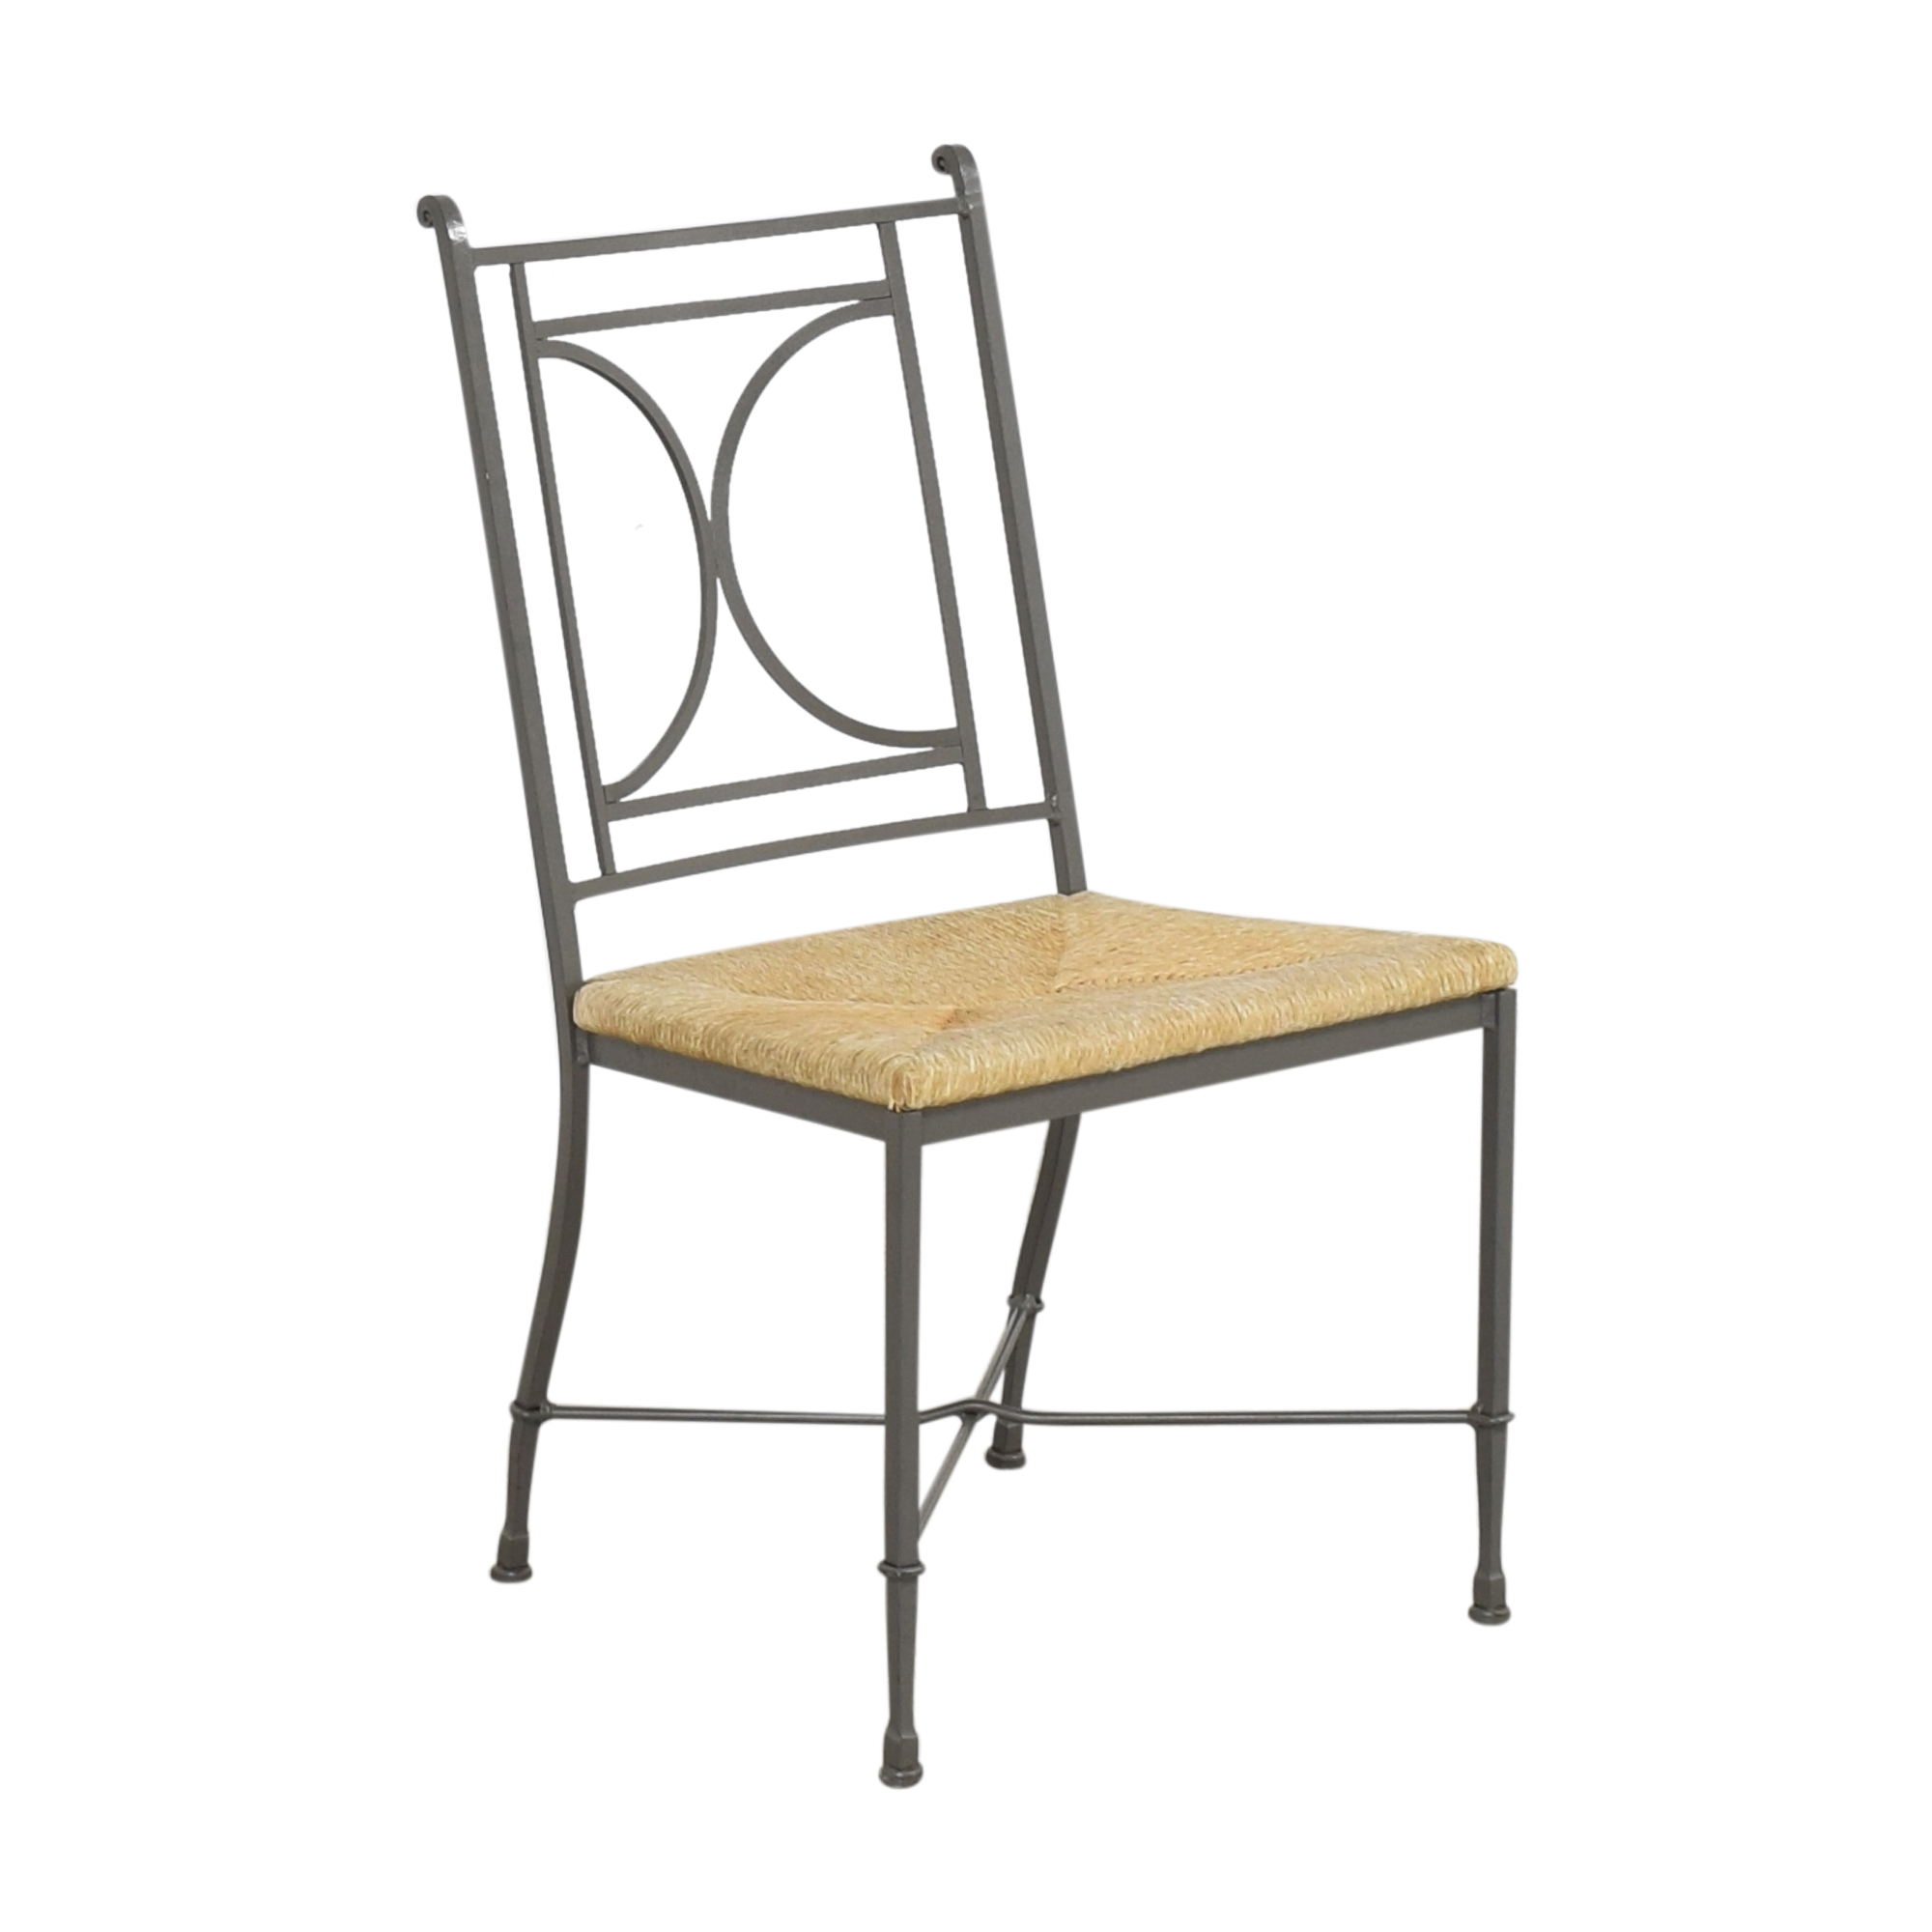 shop Charleston Forge Woven Seat Dining Chairs with Cushions Charleston Forge Chairs